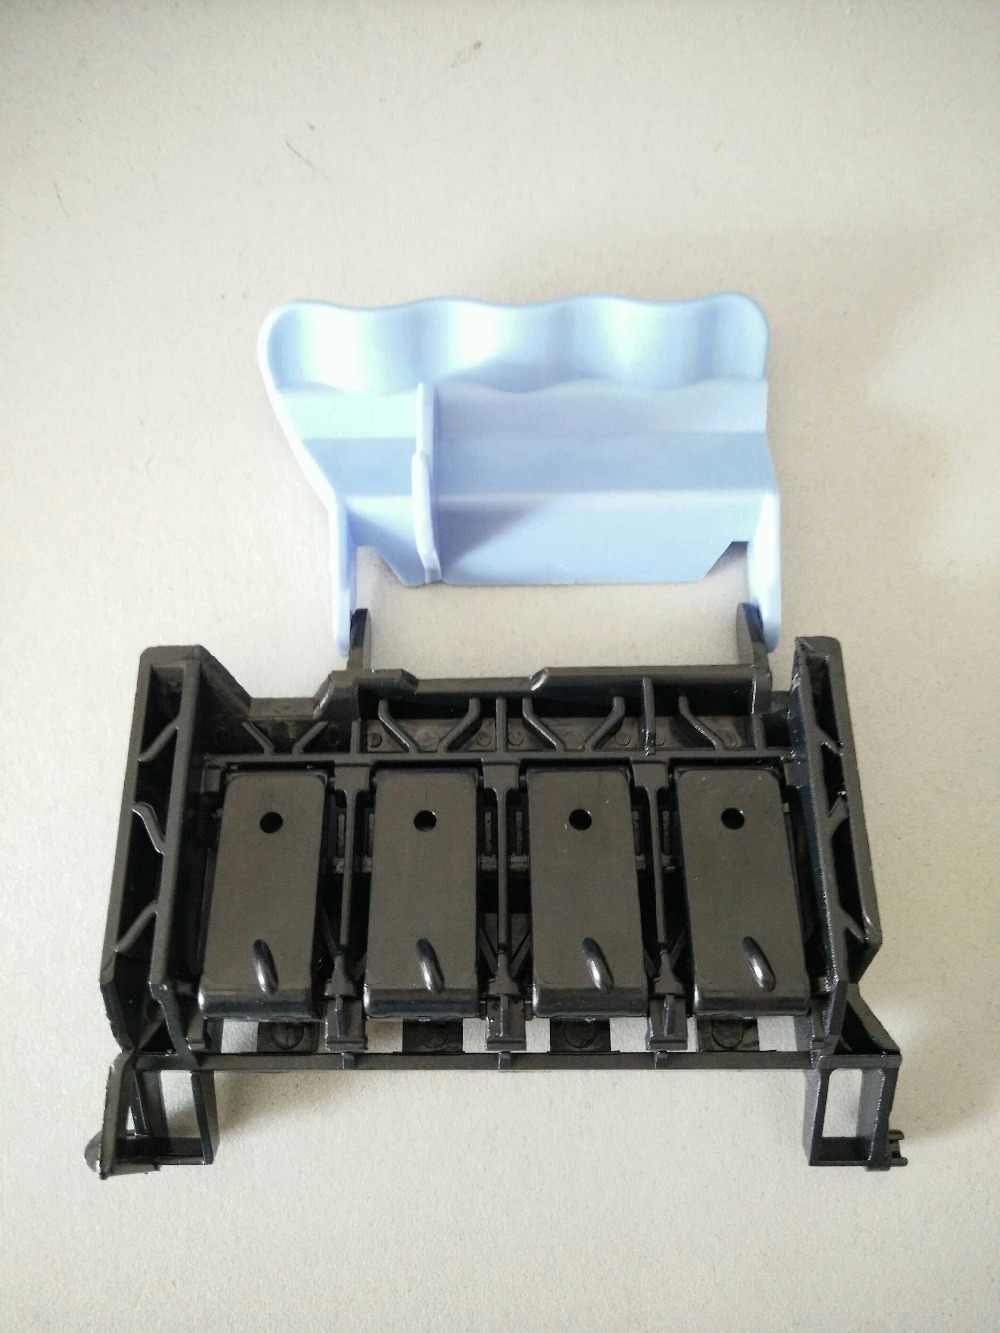 Printhead Carriage Assembly Cover For HP 500 800 510 Printer C7769-69376 Upper Head Cover <br><br>Aliexpress